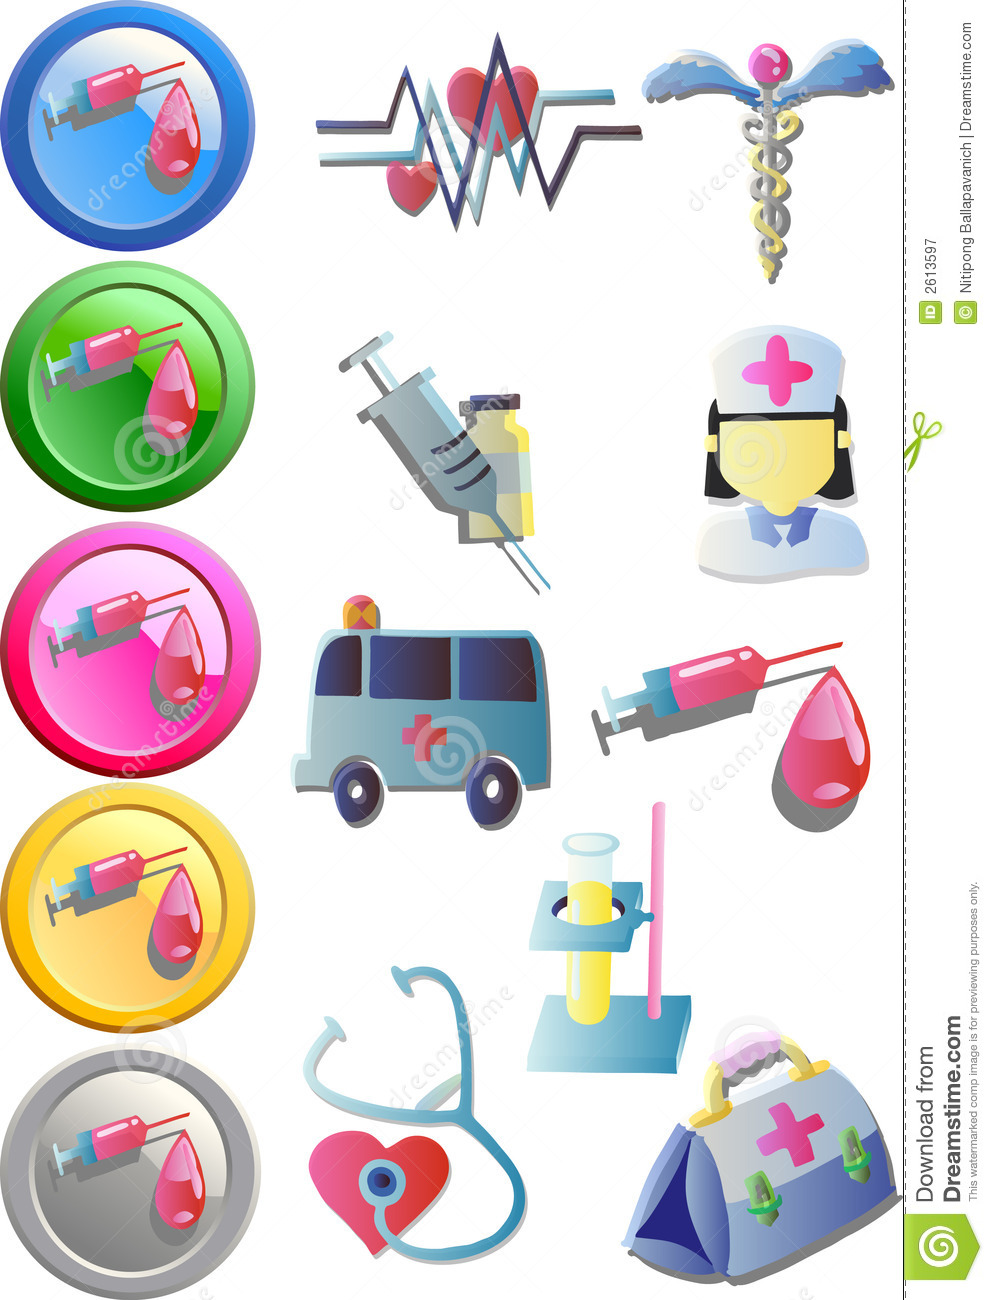 Medical Clip Art (Vector) Stock Vector. Illustration Of First - 2613597